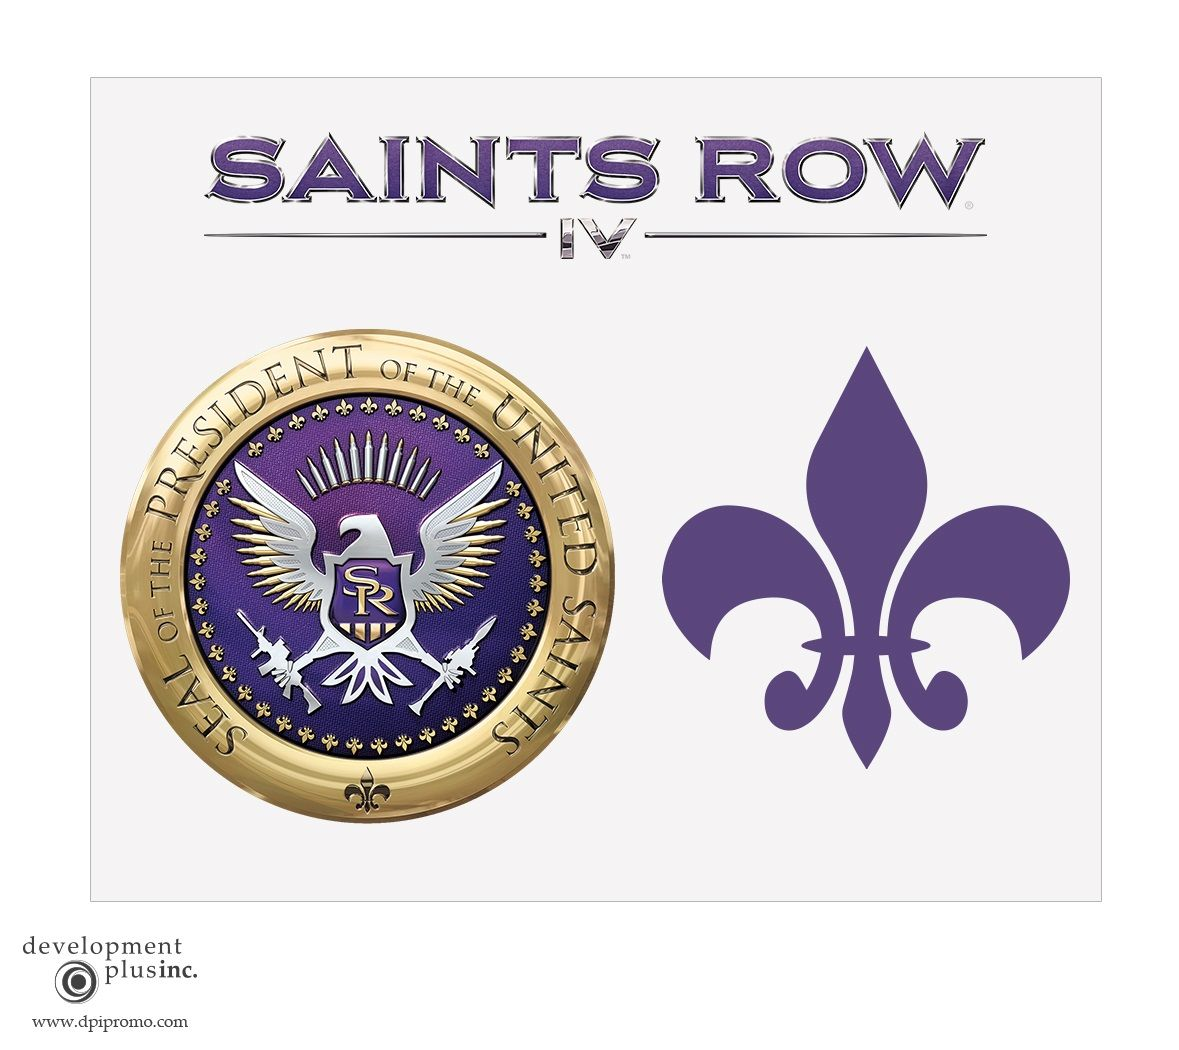 Lapel pin concept for saints row iv httpdpipromocontact lapel pin concept for saints row iv httpdpipromocontactml concepts saints row iv pinterest saints row iv and cosplay biocorpaavc Gallery